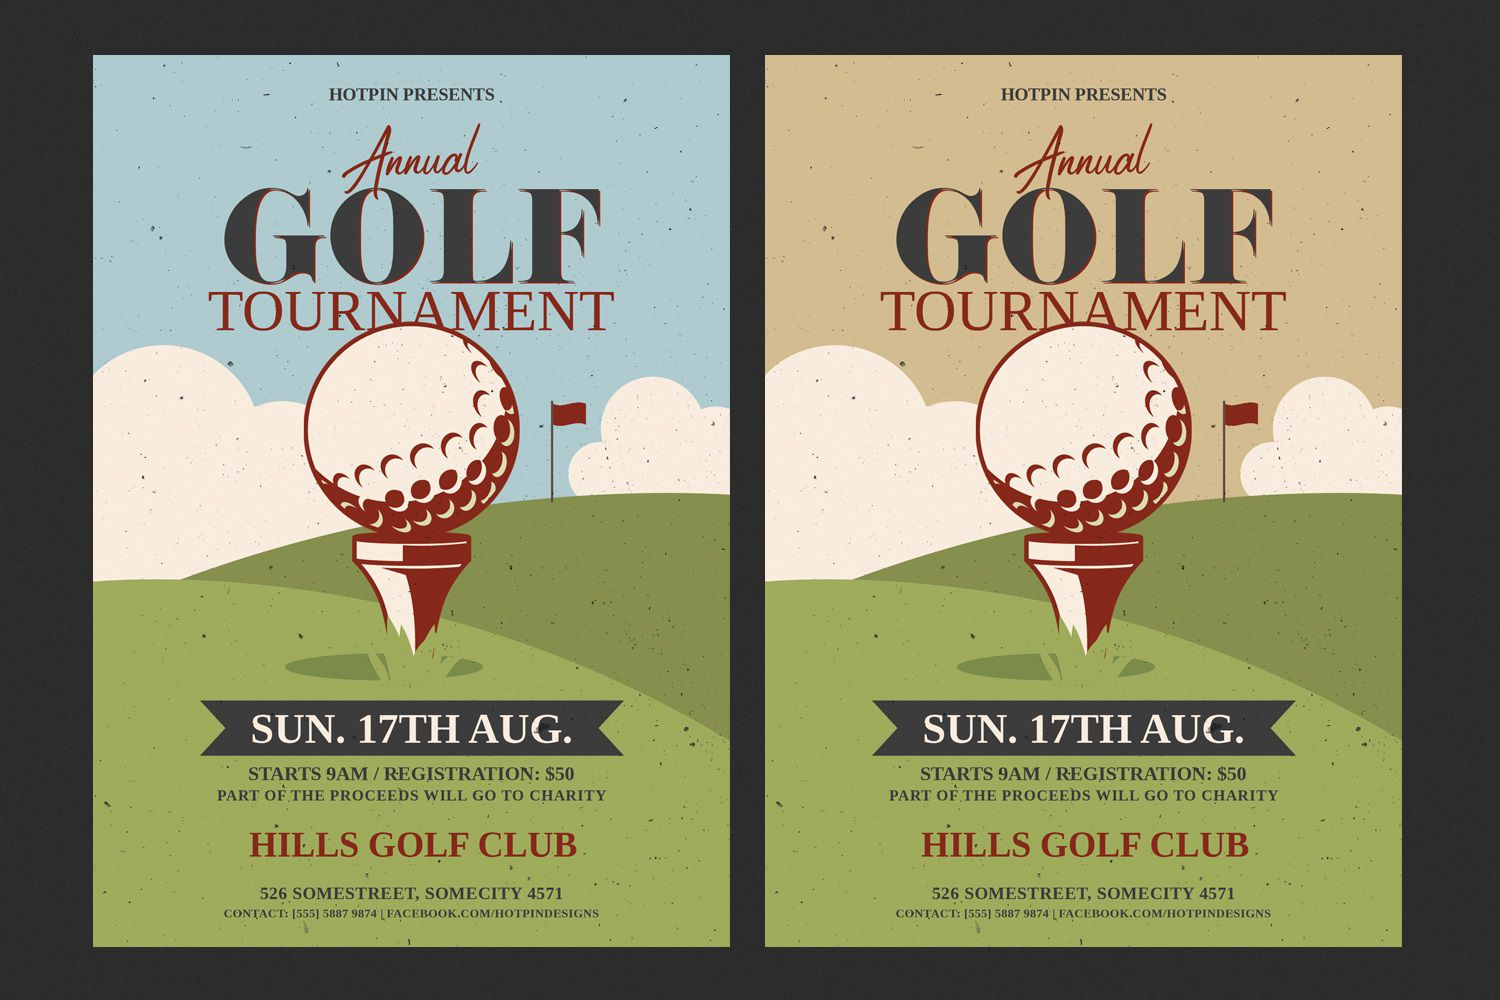 000 Remarkable Golf Tournament Flyer Template Example  Word Free PdfFull